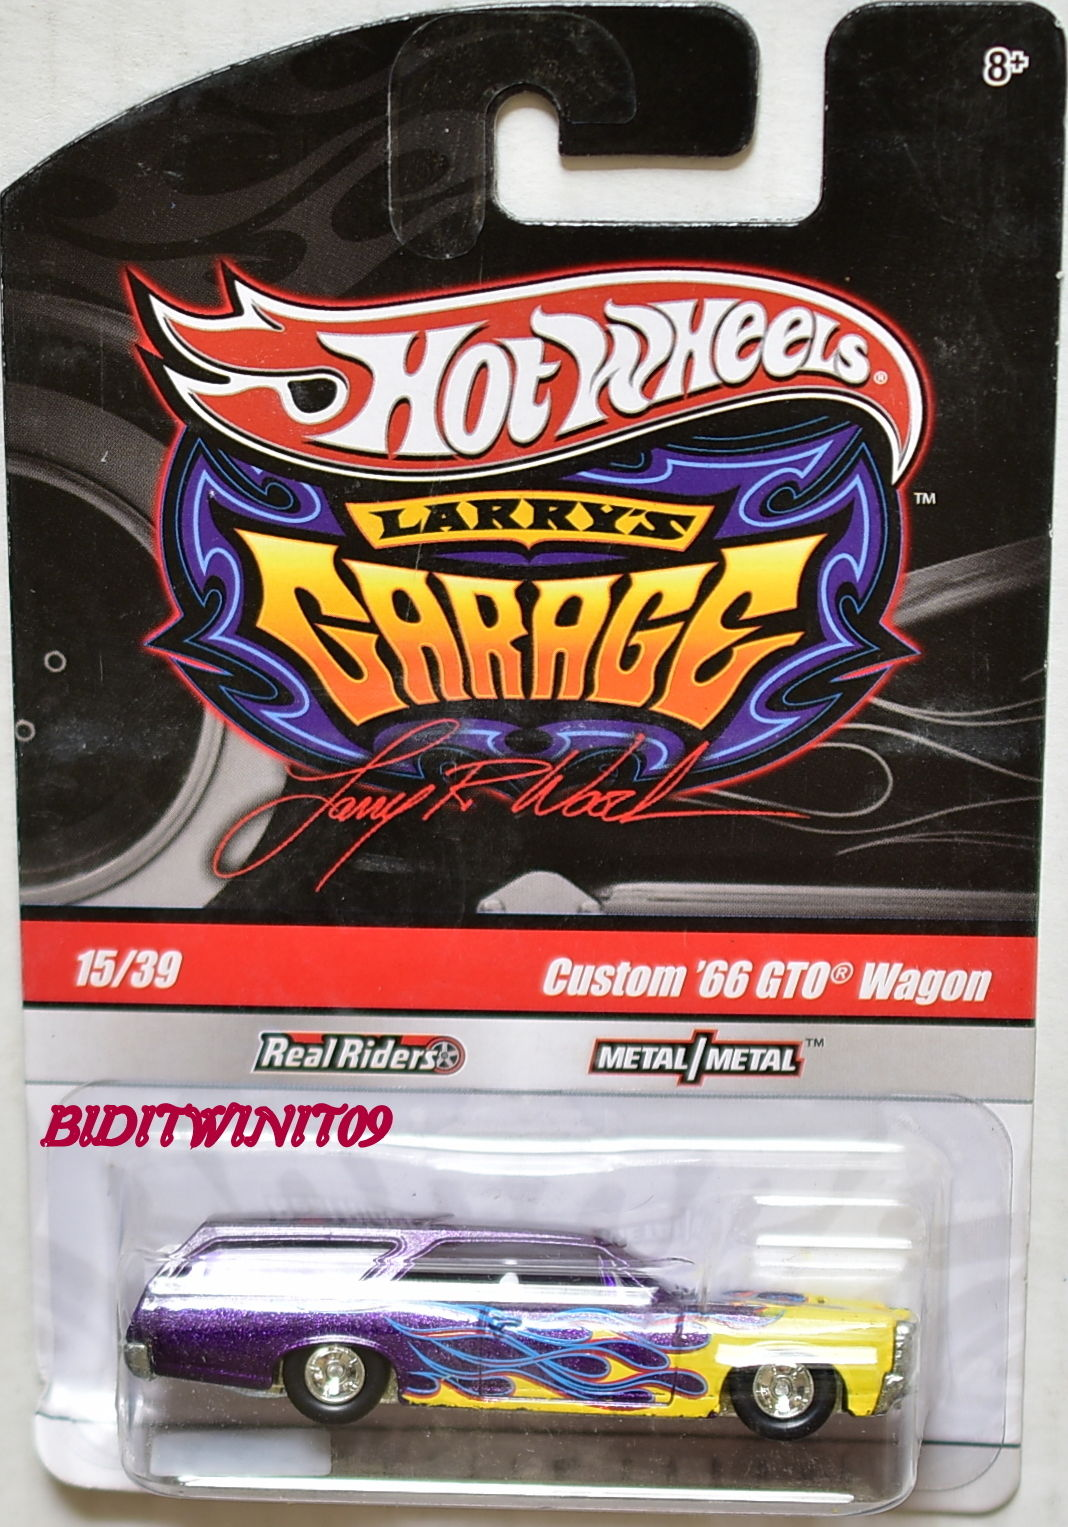 HOT WHEELS LARRY'S GARAGE #15/39 CUSTOM '66 GTO WAGON PURPLE CHASE E+